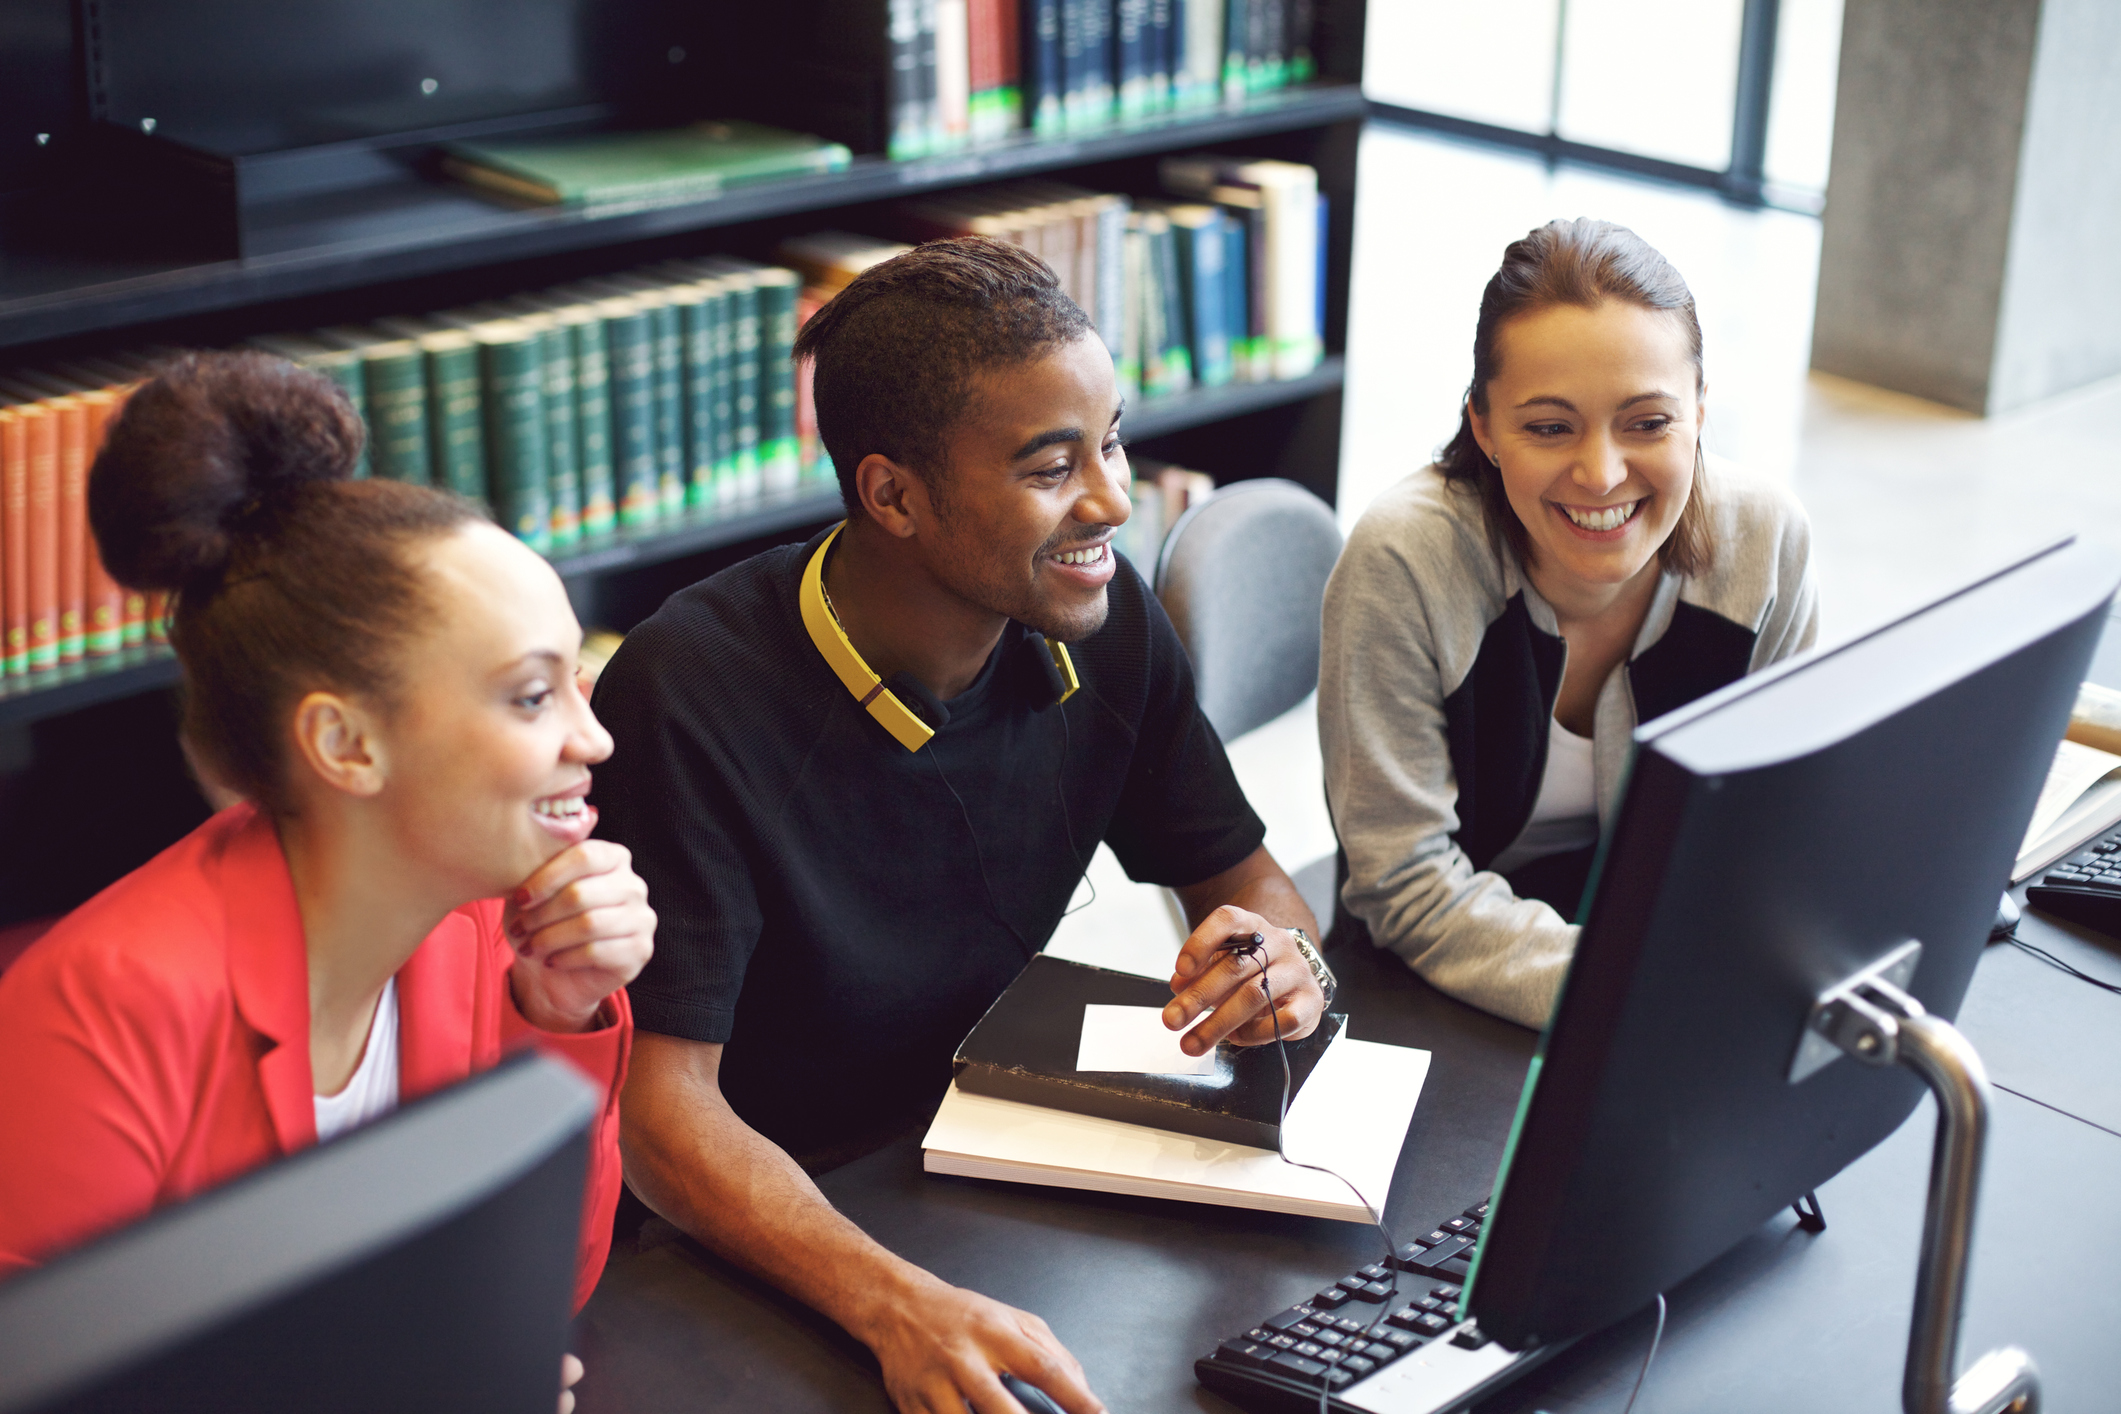 Students Working On Computer In A College Library - GED